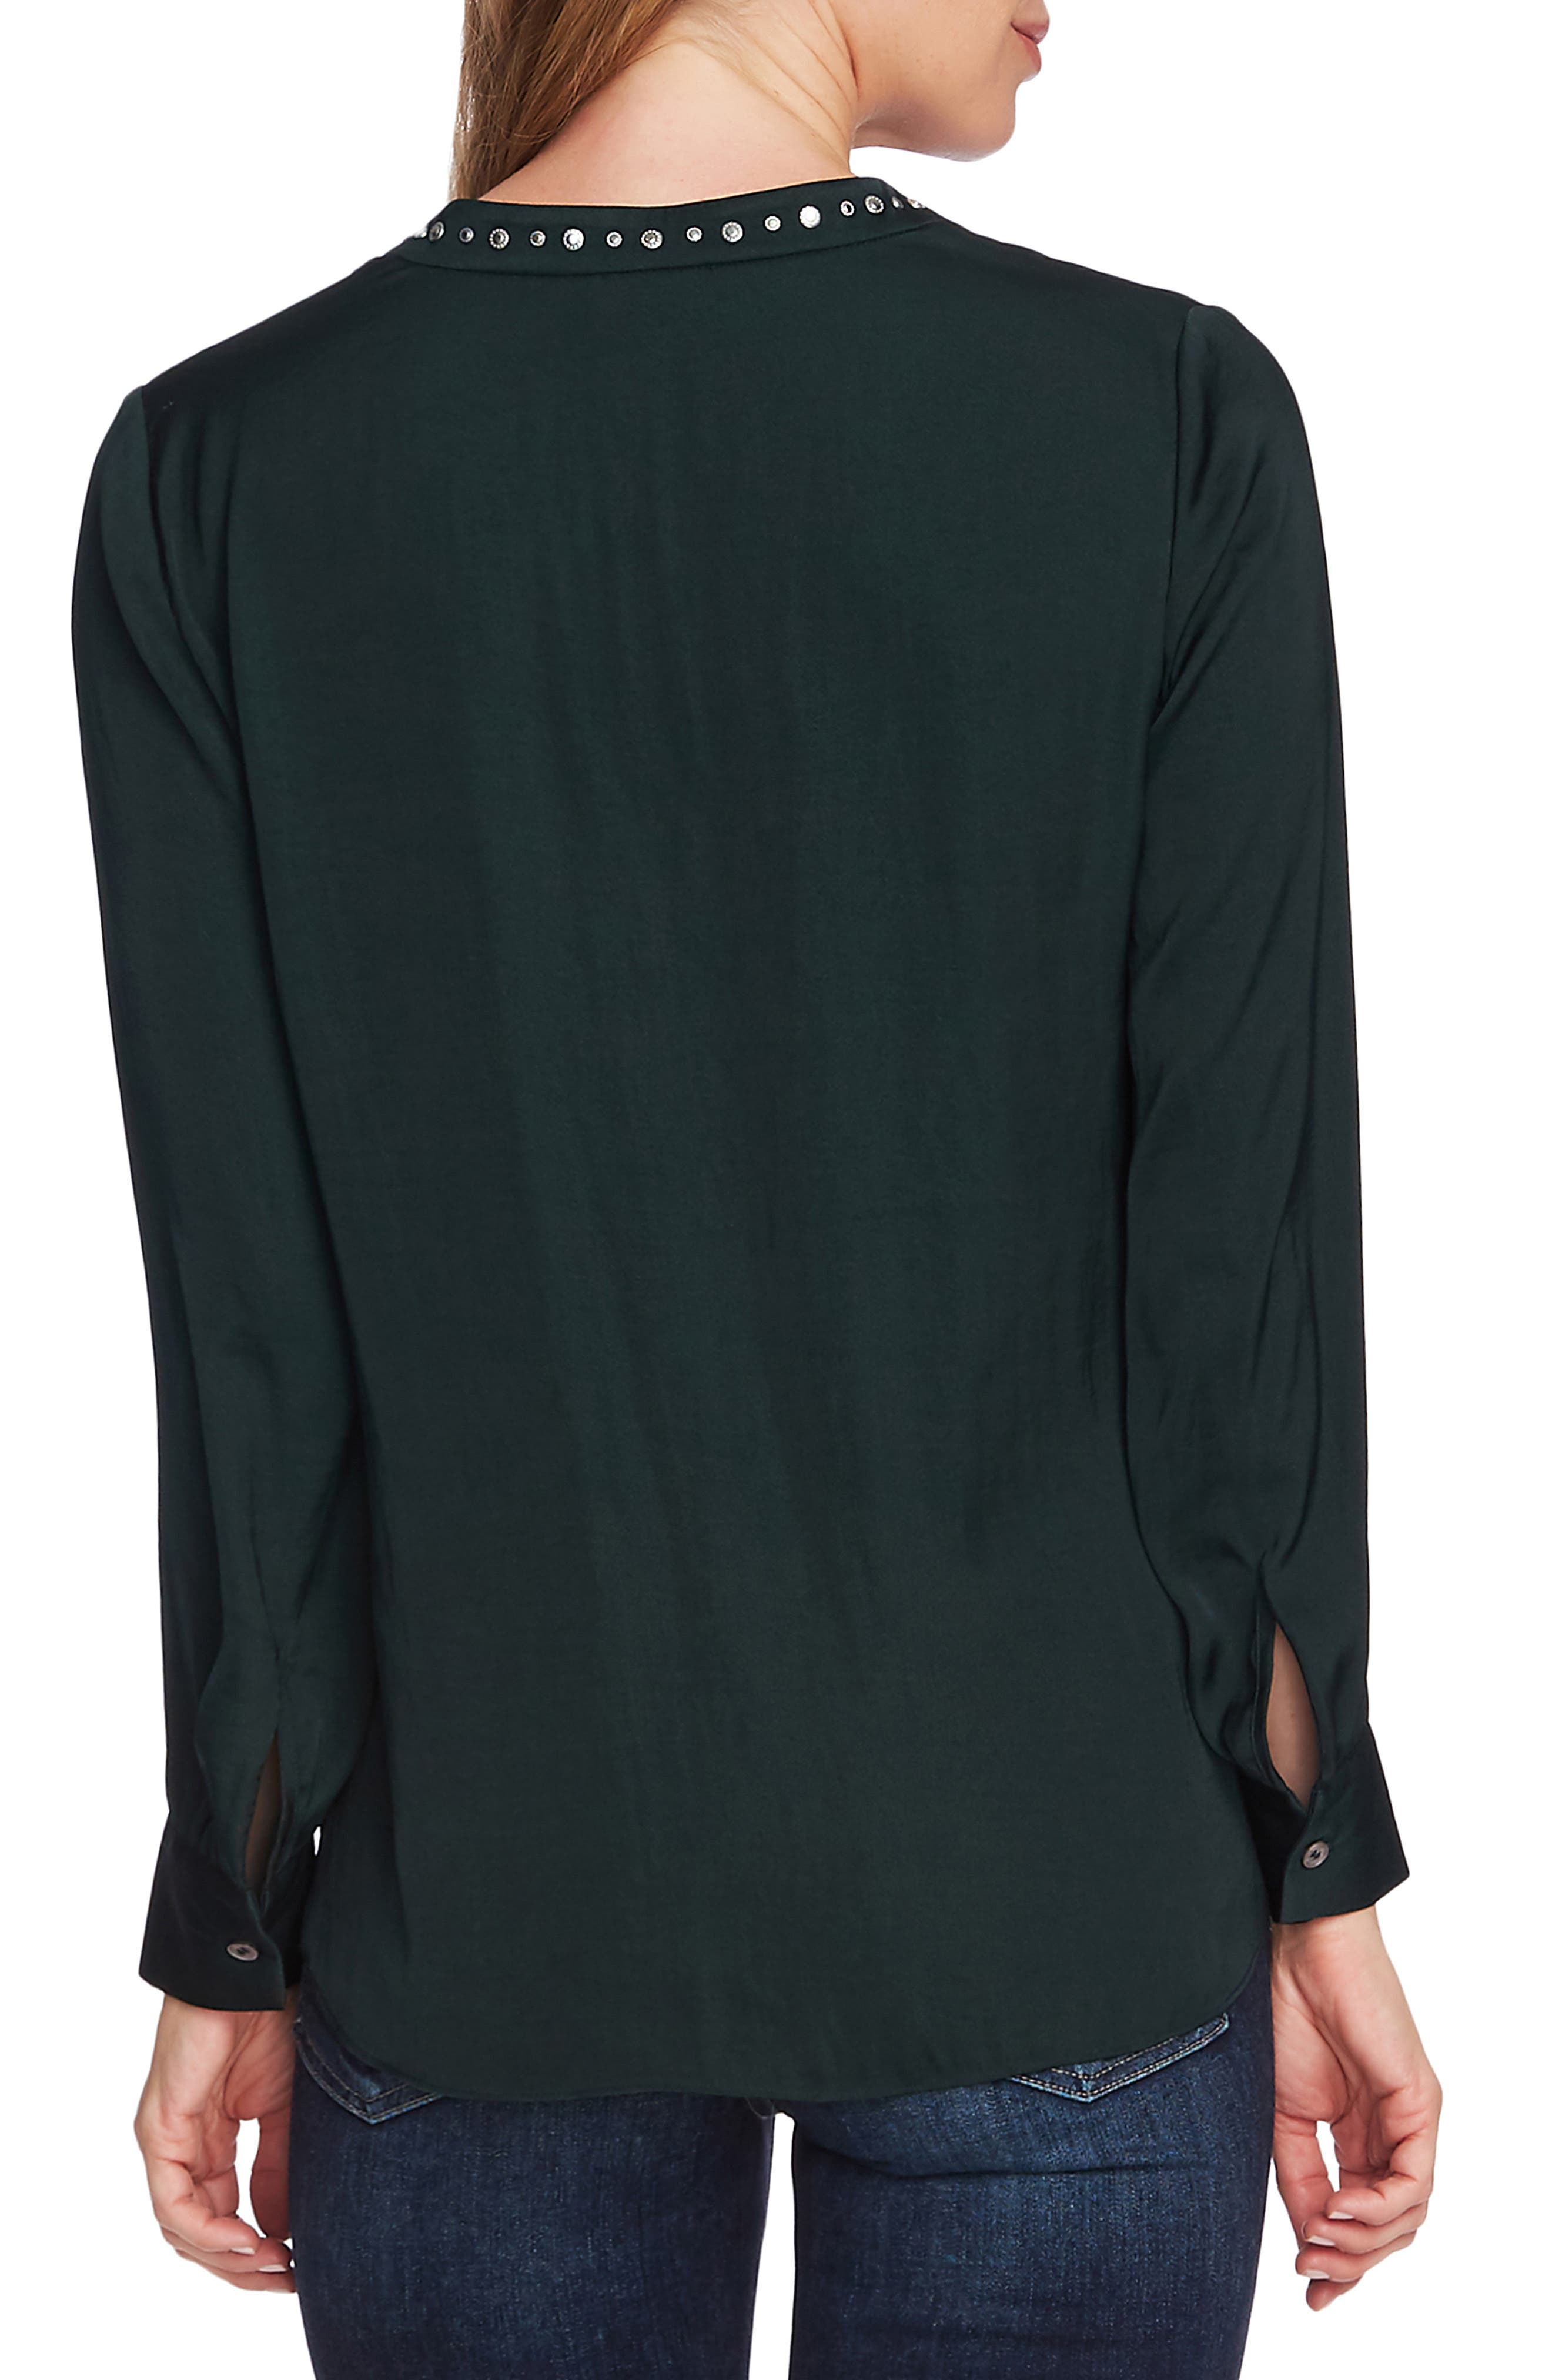 Vince Camuto Tops Studded V-Neck Rumple Blouse